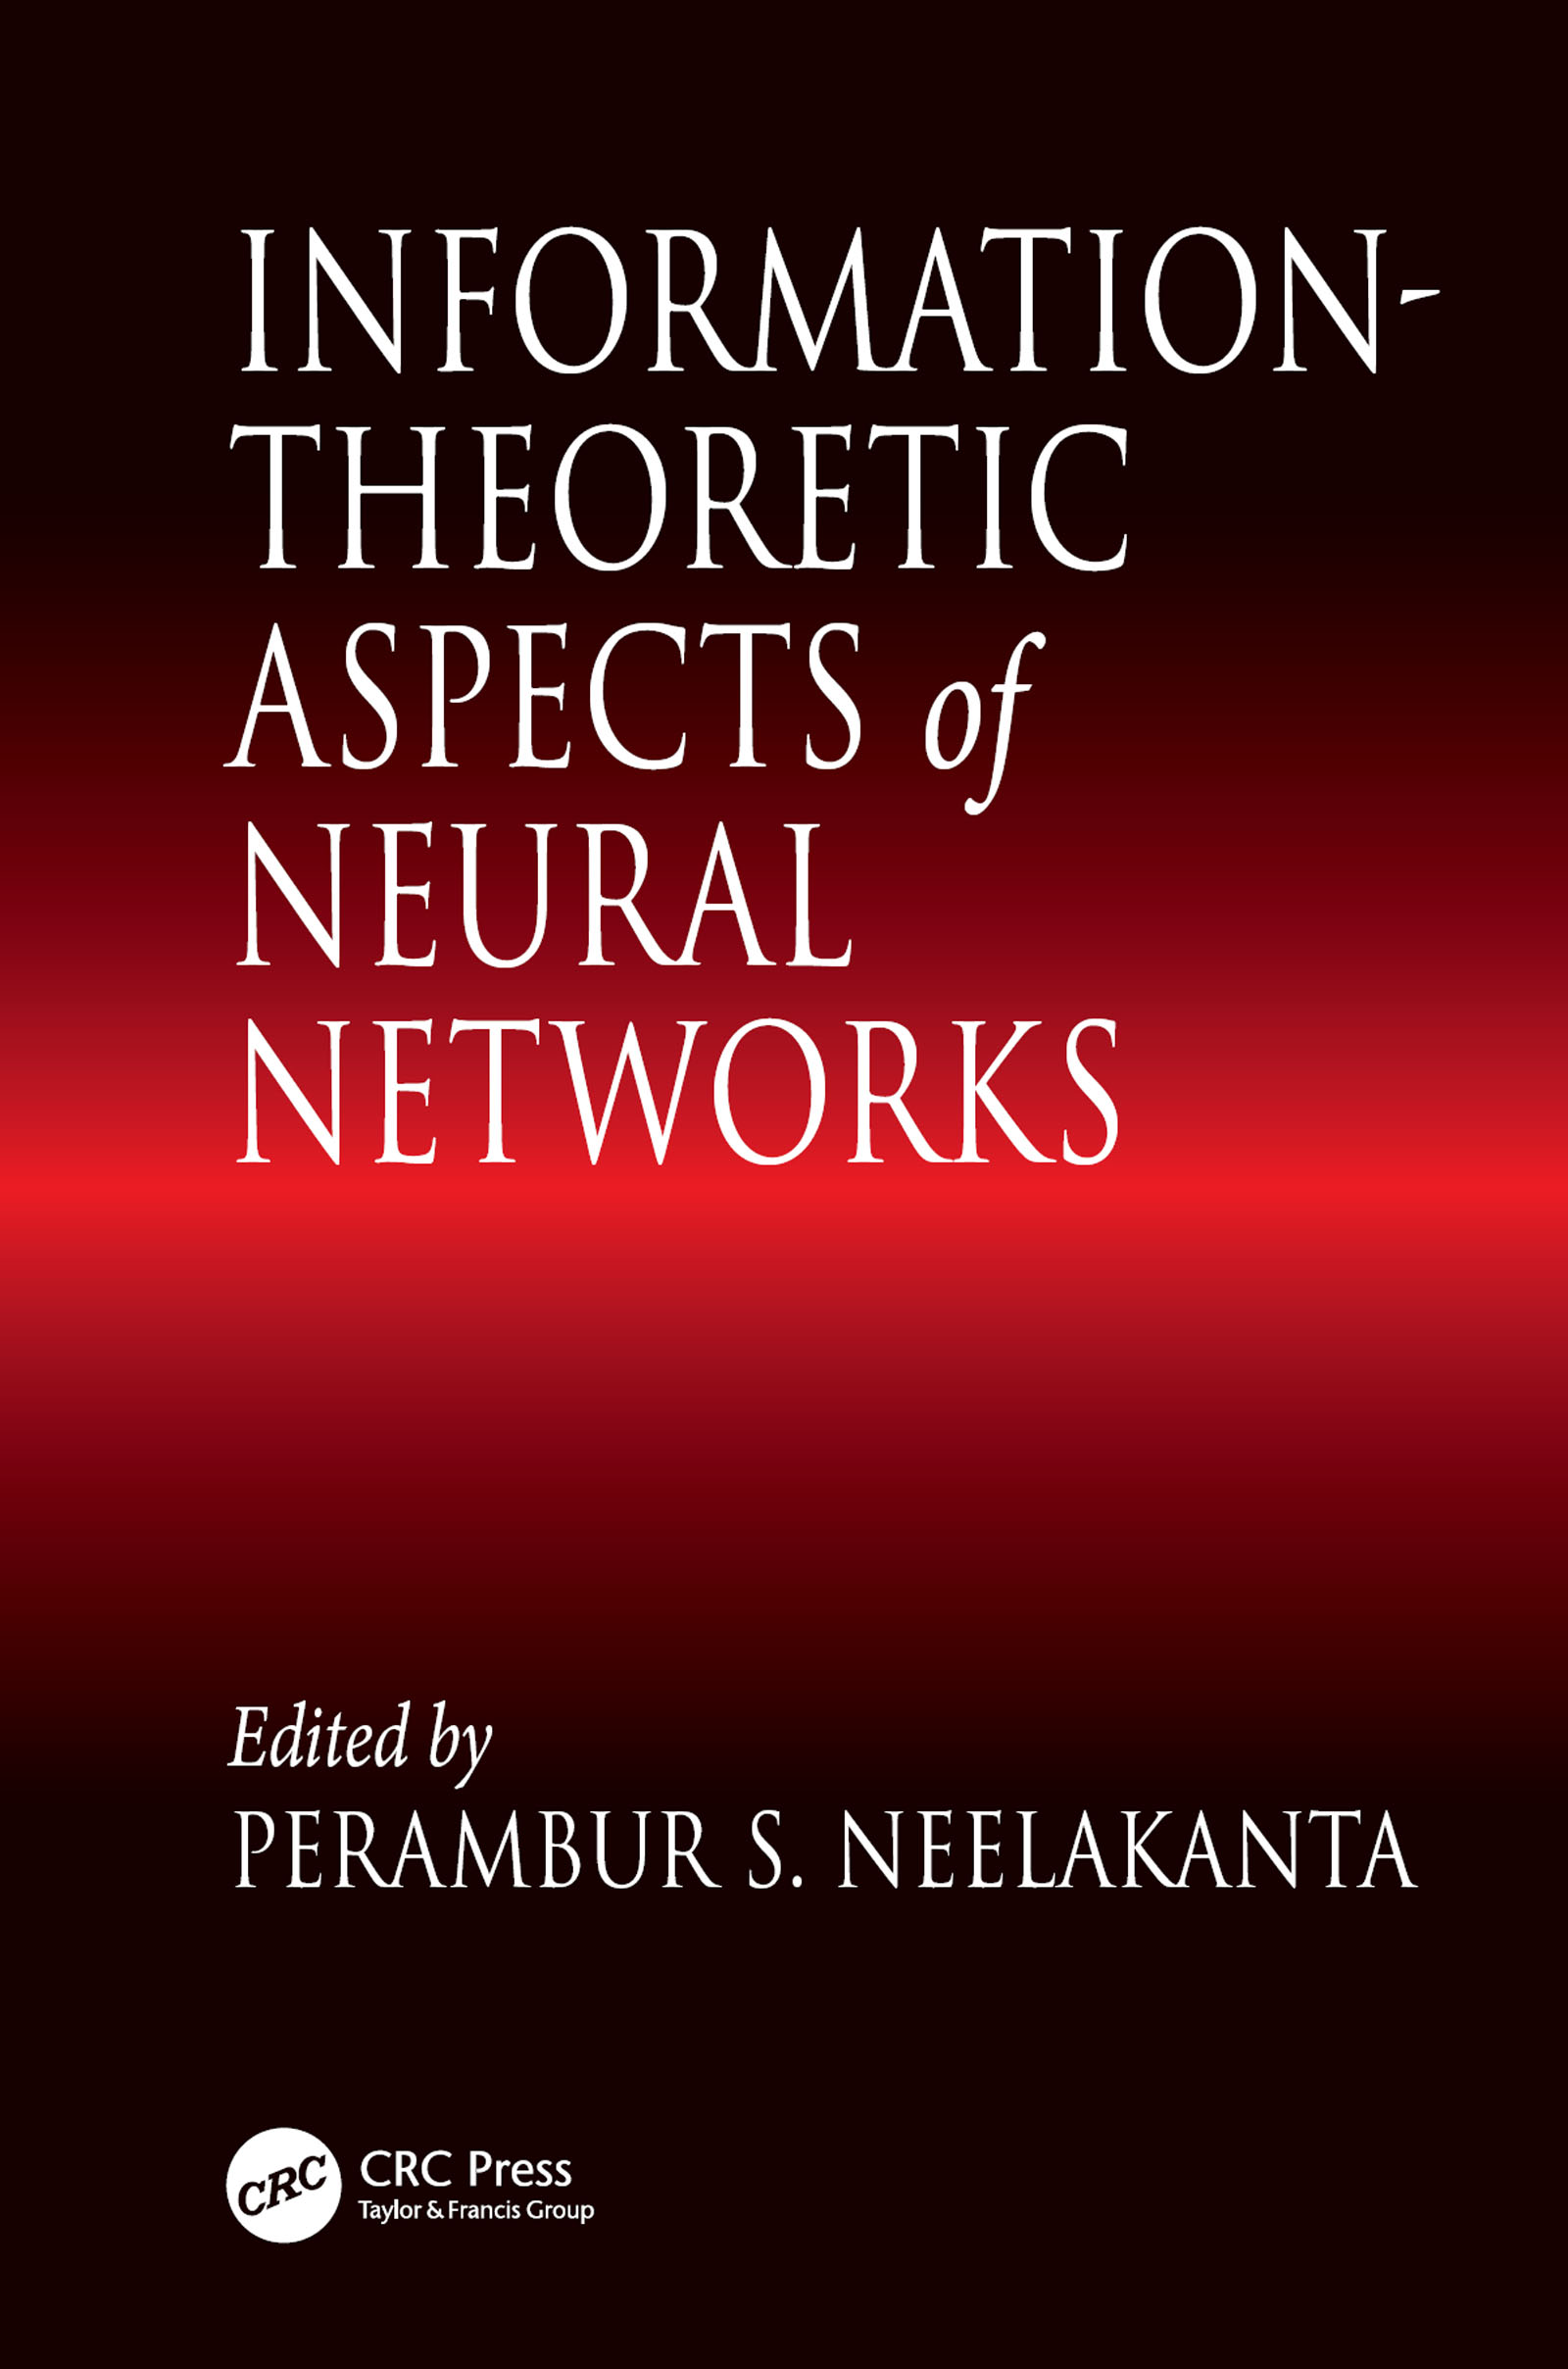 INFORMATION-THEORETIC ASPECTS of NEURAL NETWORKS